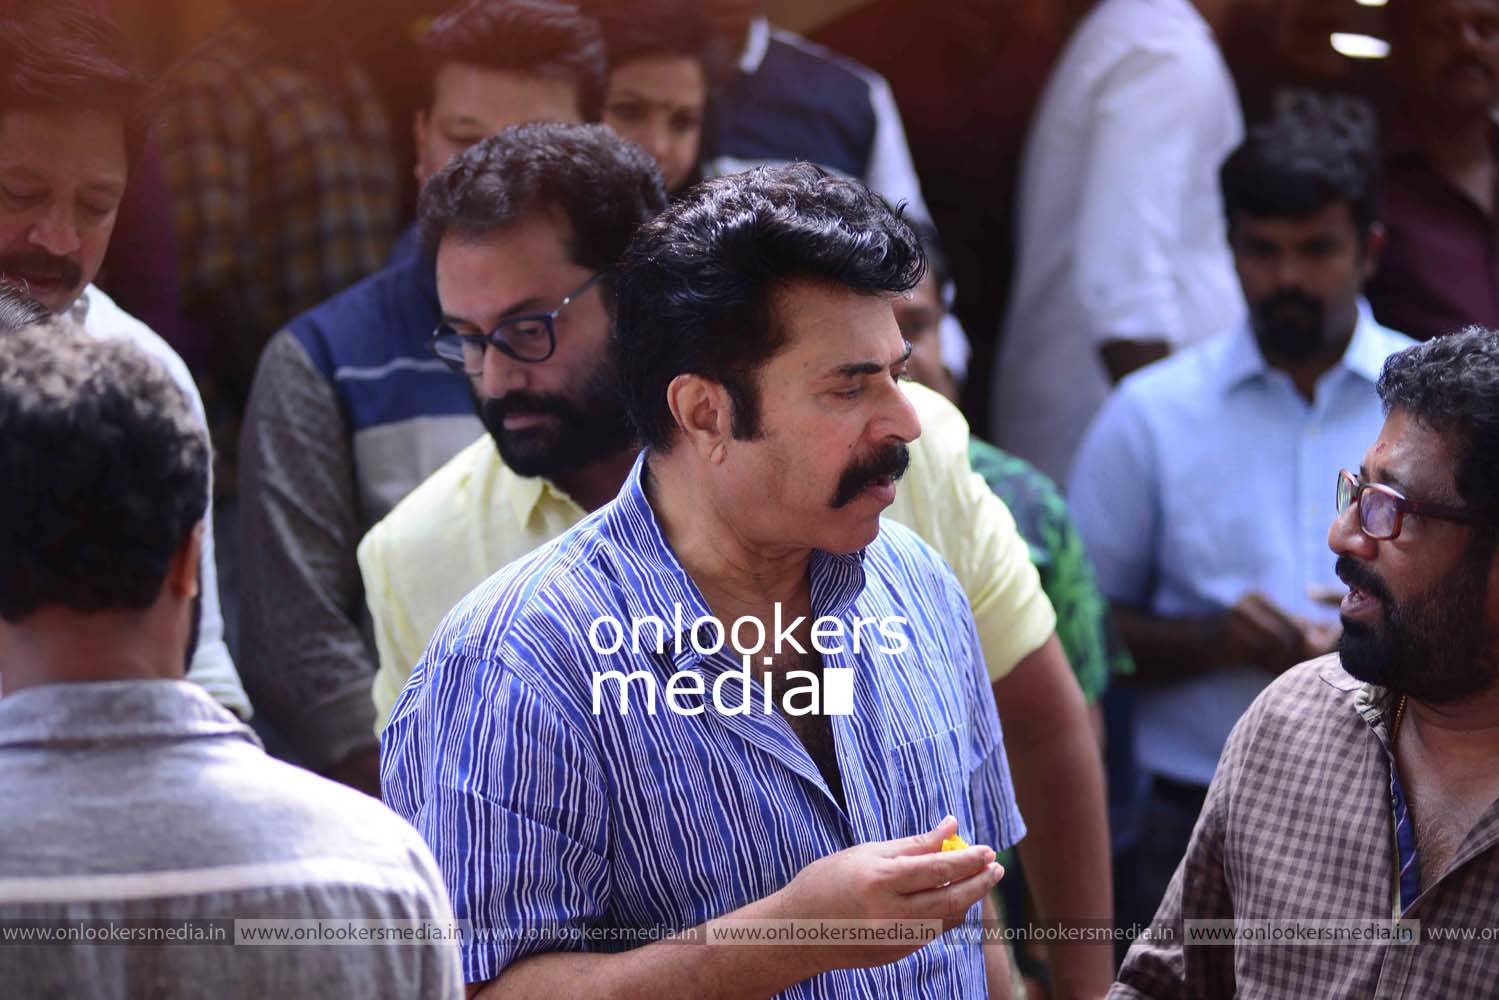 http://onlookersmedia.in/wp-content/uploads/2016/11/Puthan-Panam-Pooja-Stills-Photos-Mammootty-Ranjith-6.jpg